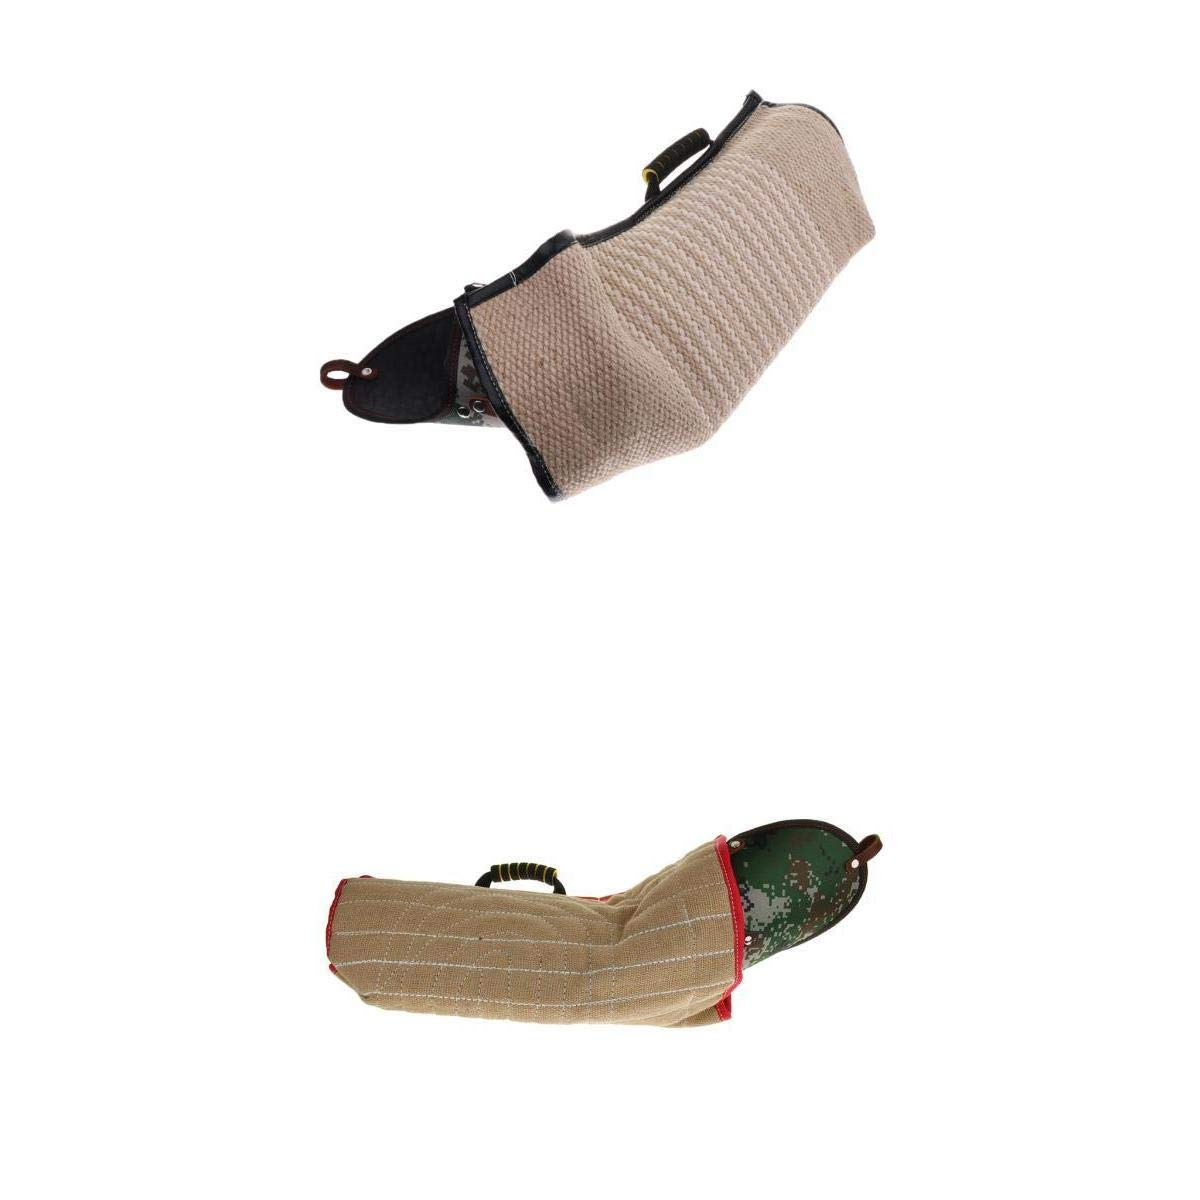 joyMerit 2 x Dog Bite Sleeves Tugs for Young Dogs Work Dog Puppy Training Playing, Fit Professional Intermediate for Both Left and Right Hand by joyMerit